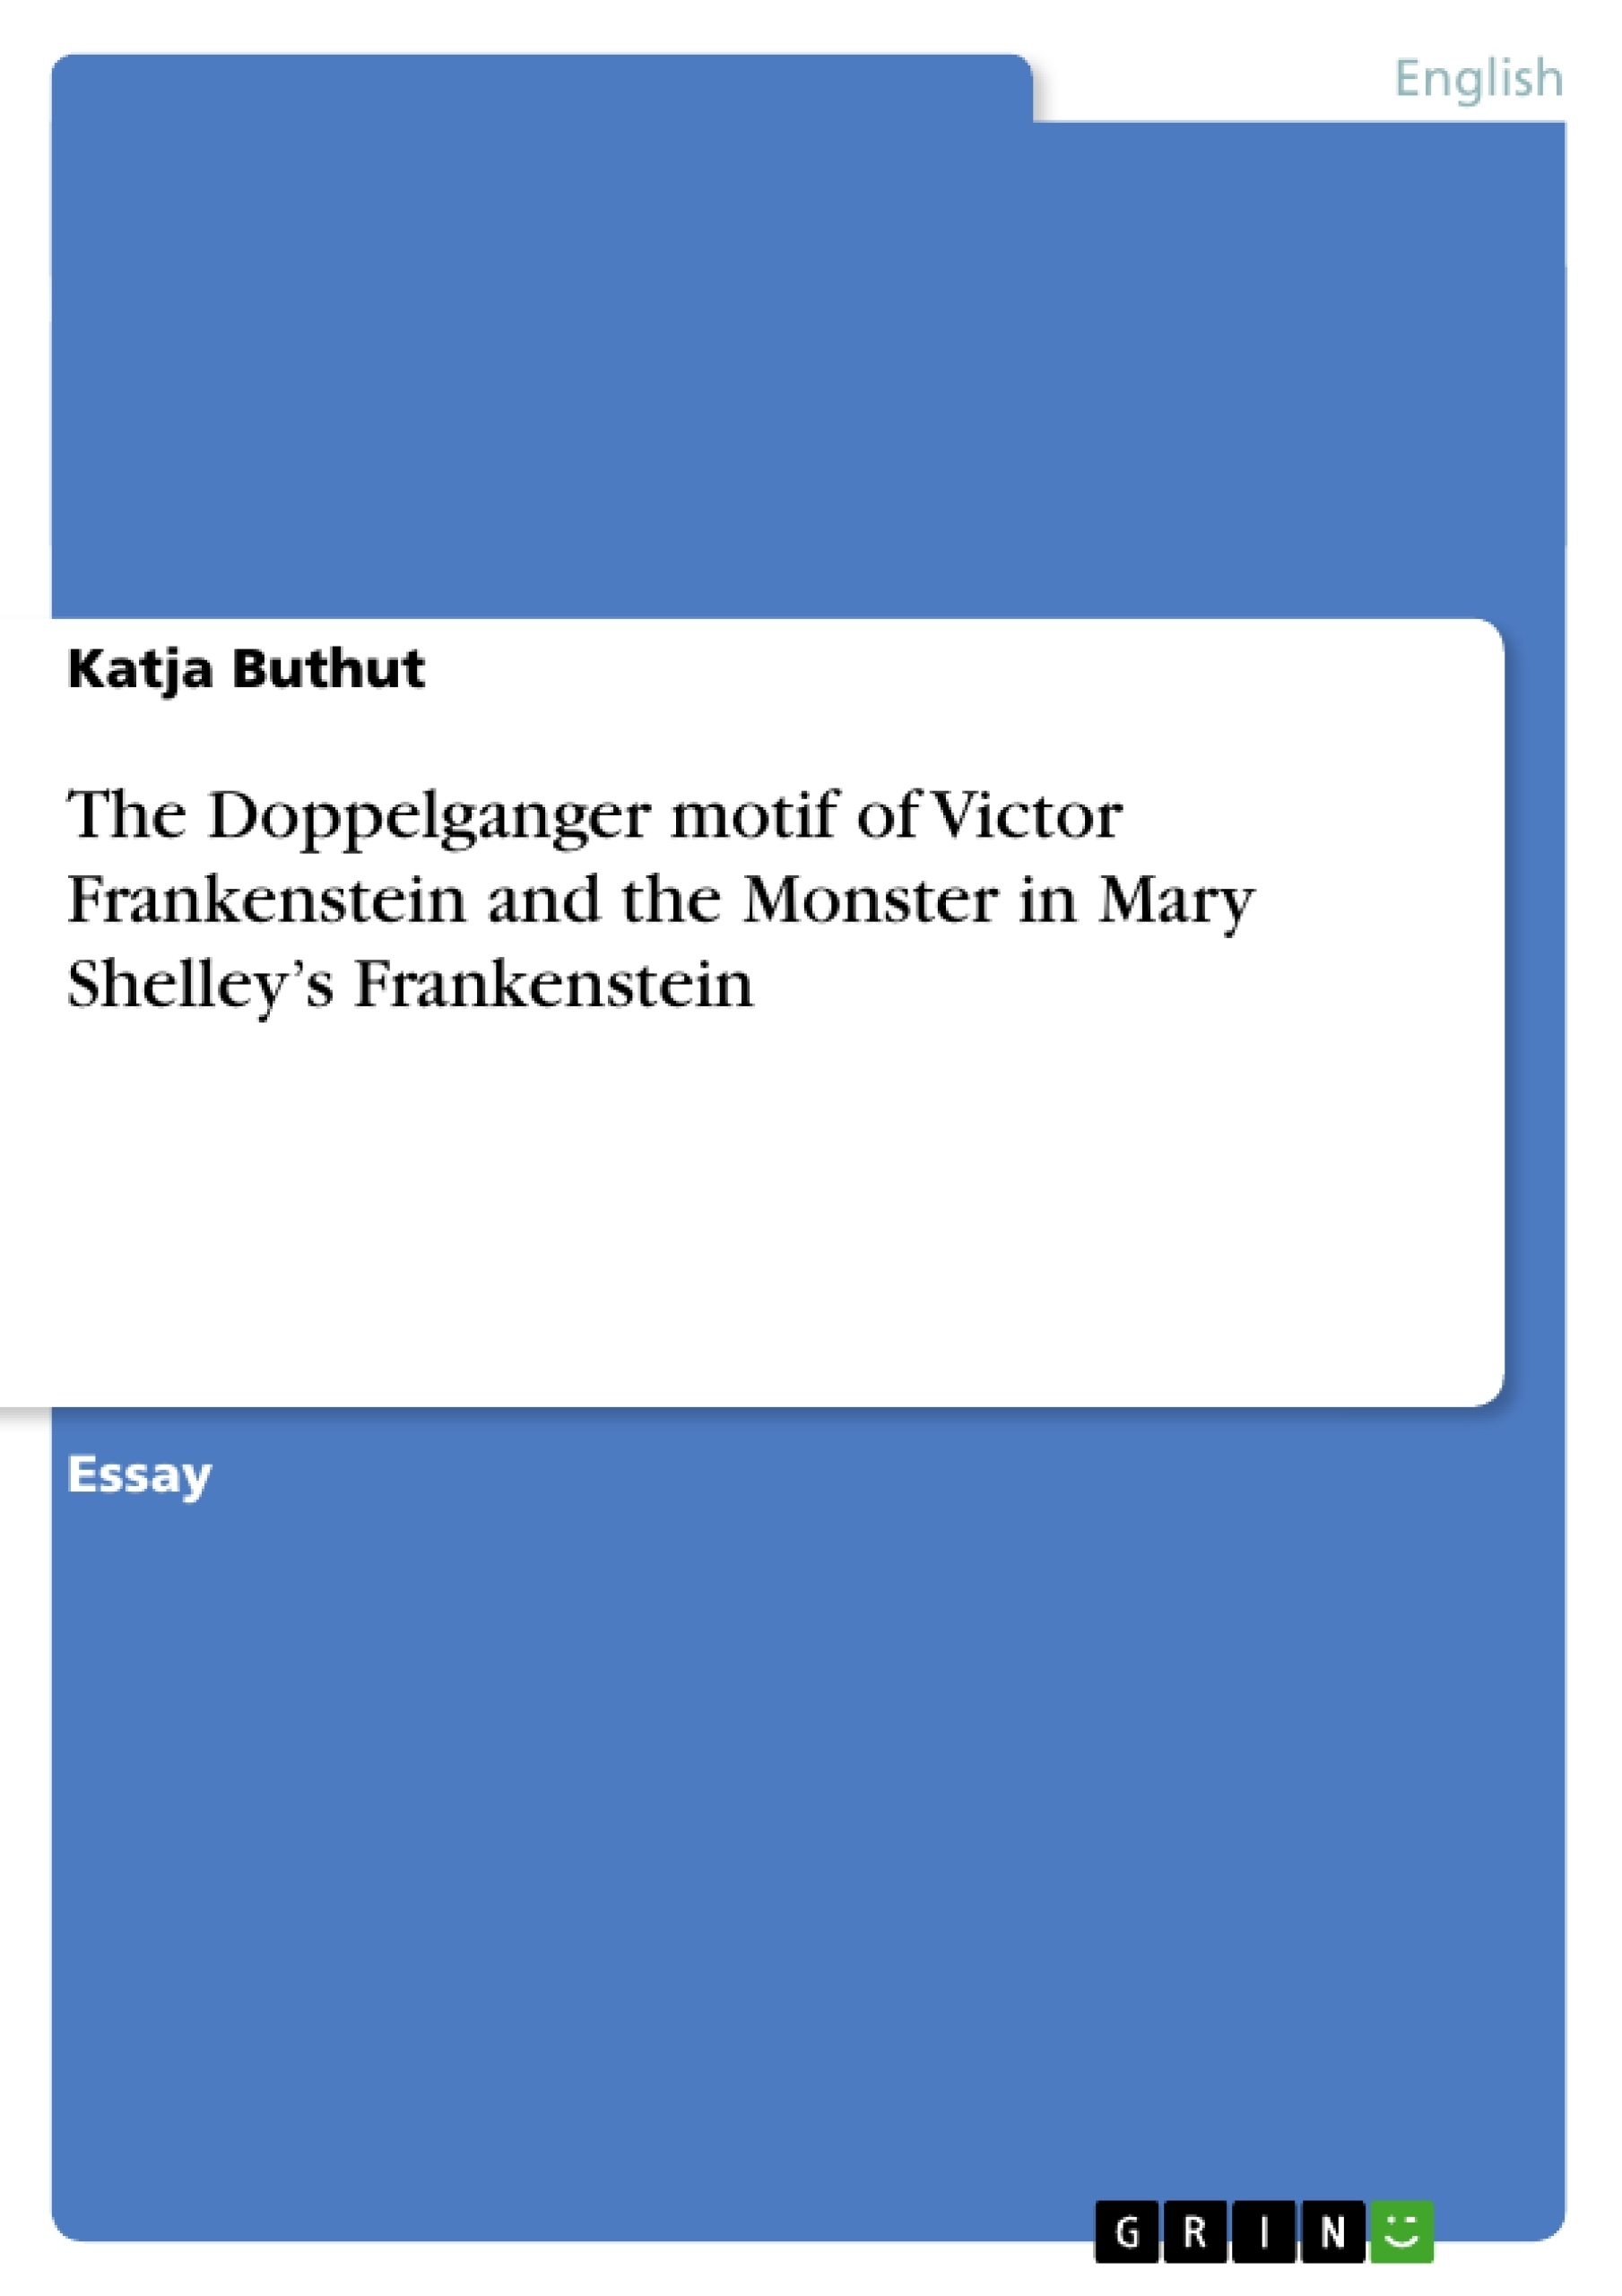 frankenstein a psychological analysis essay A psychological analysis of the characters in frankenstein by mary shelley id, ego, and superego id: the creature the part of a person's unconscious mind that relates to basic needs and desires.